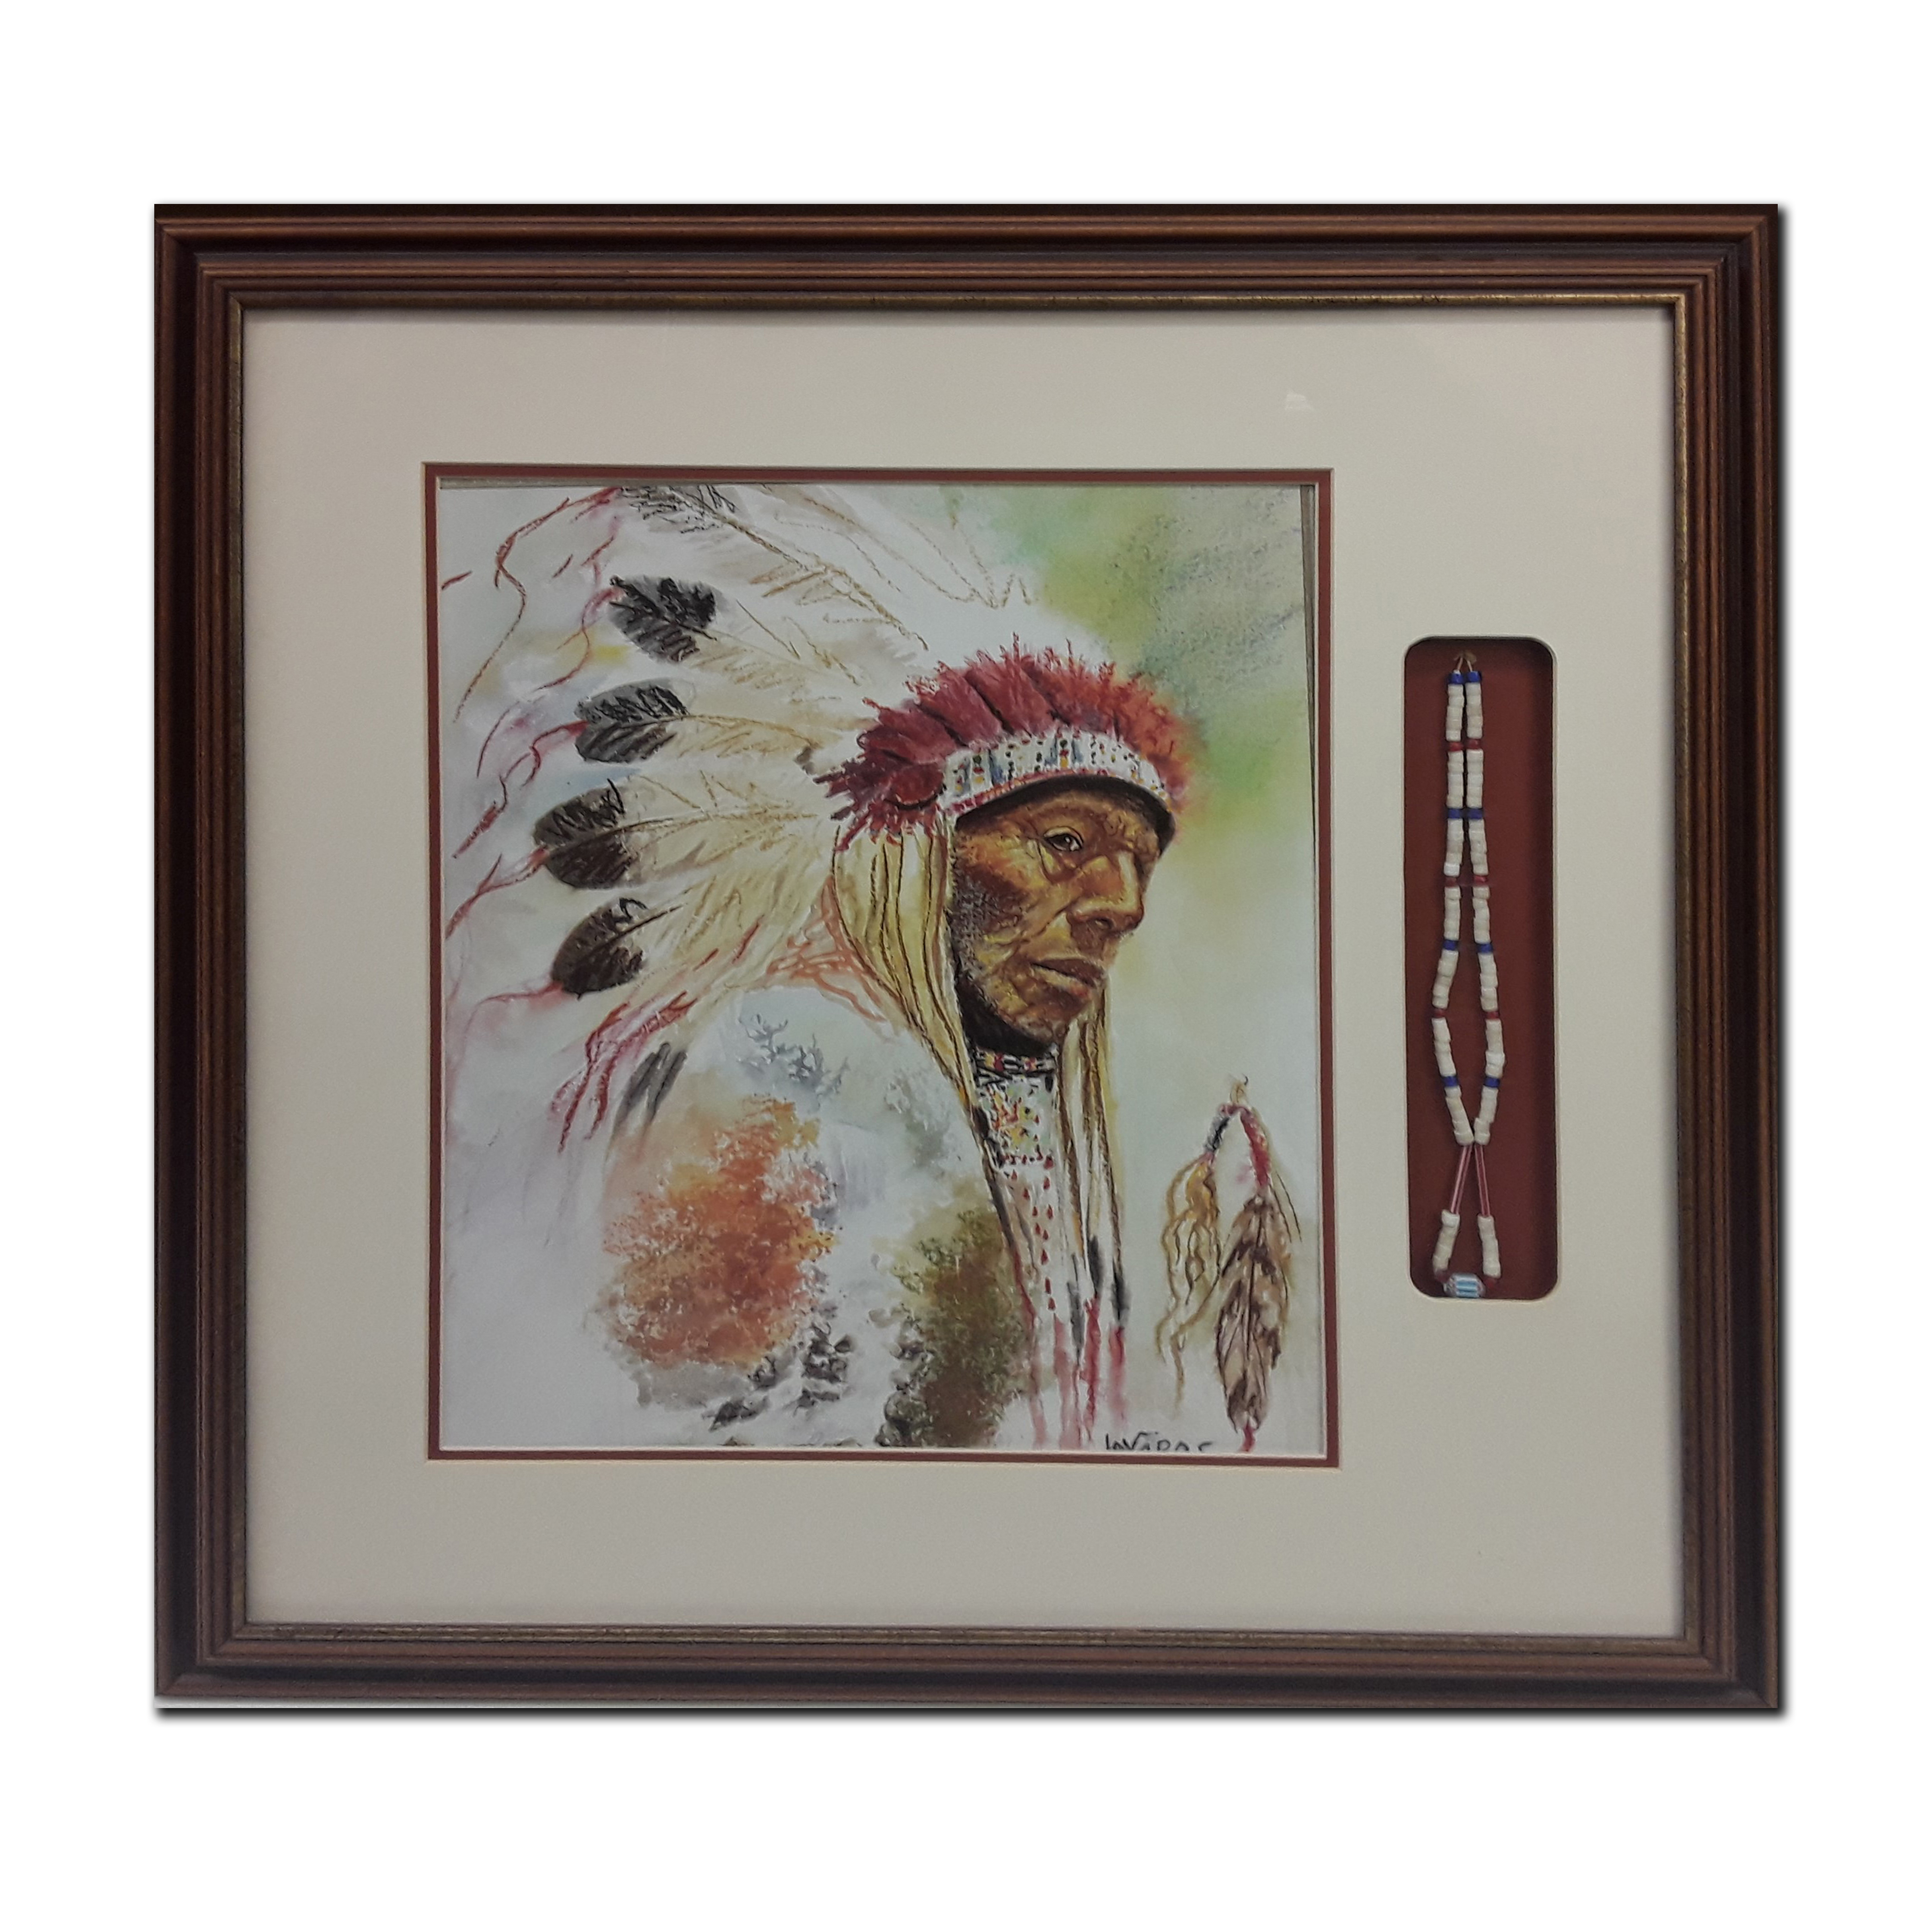 Native American Native American Themed Framed Print With Accompanying Necklace (Art and Artifacts)